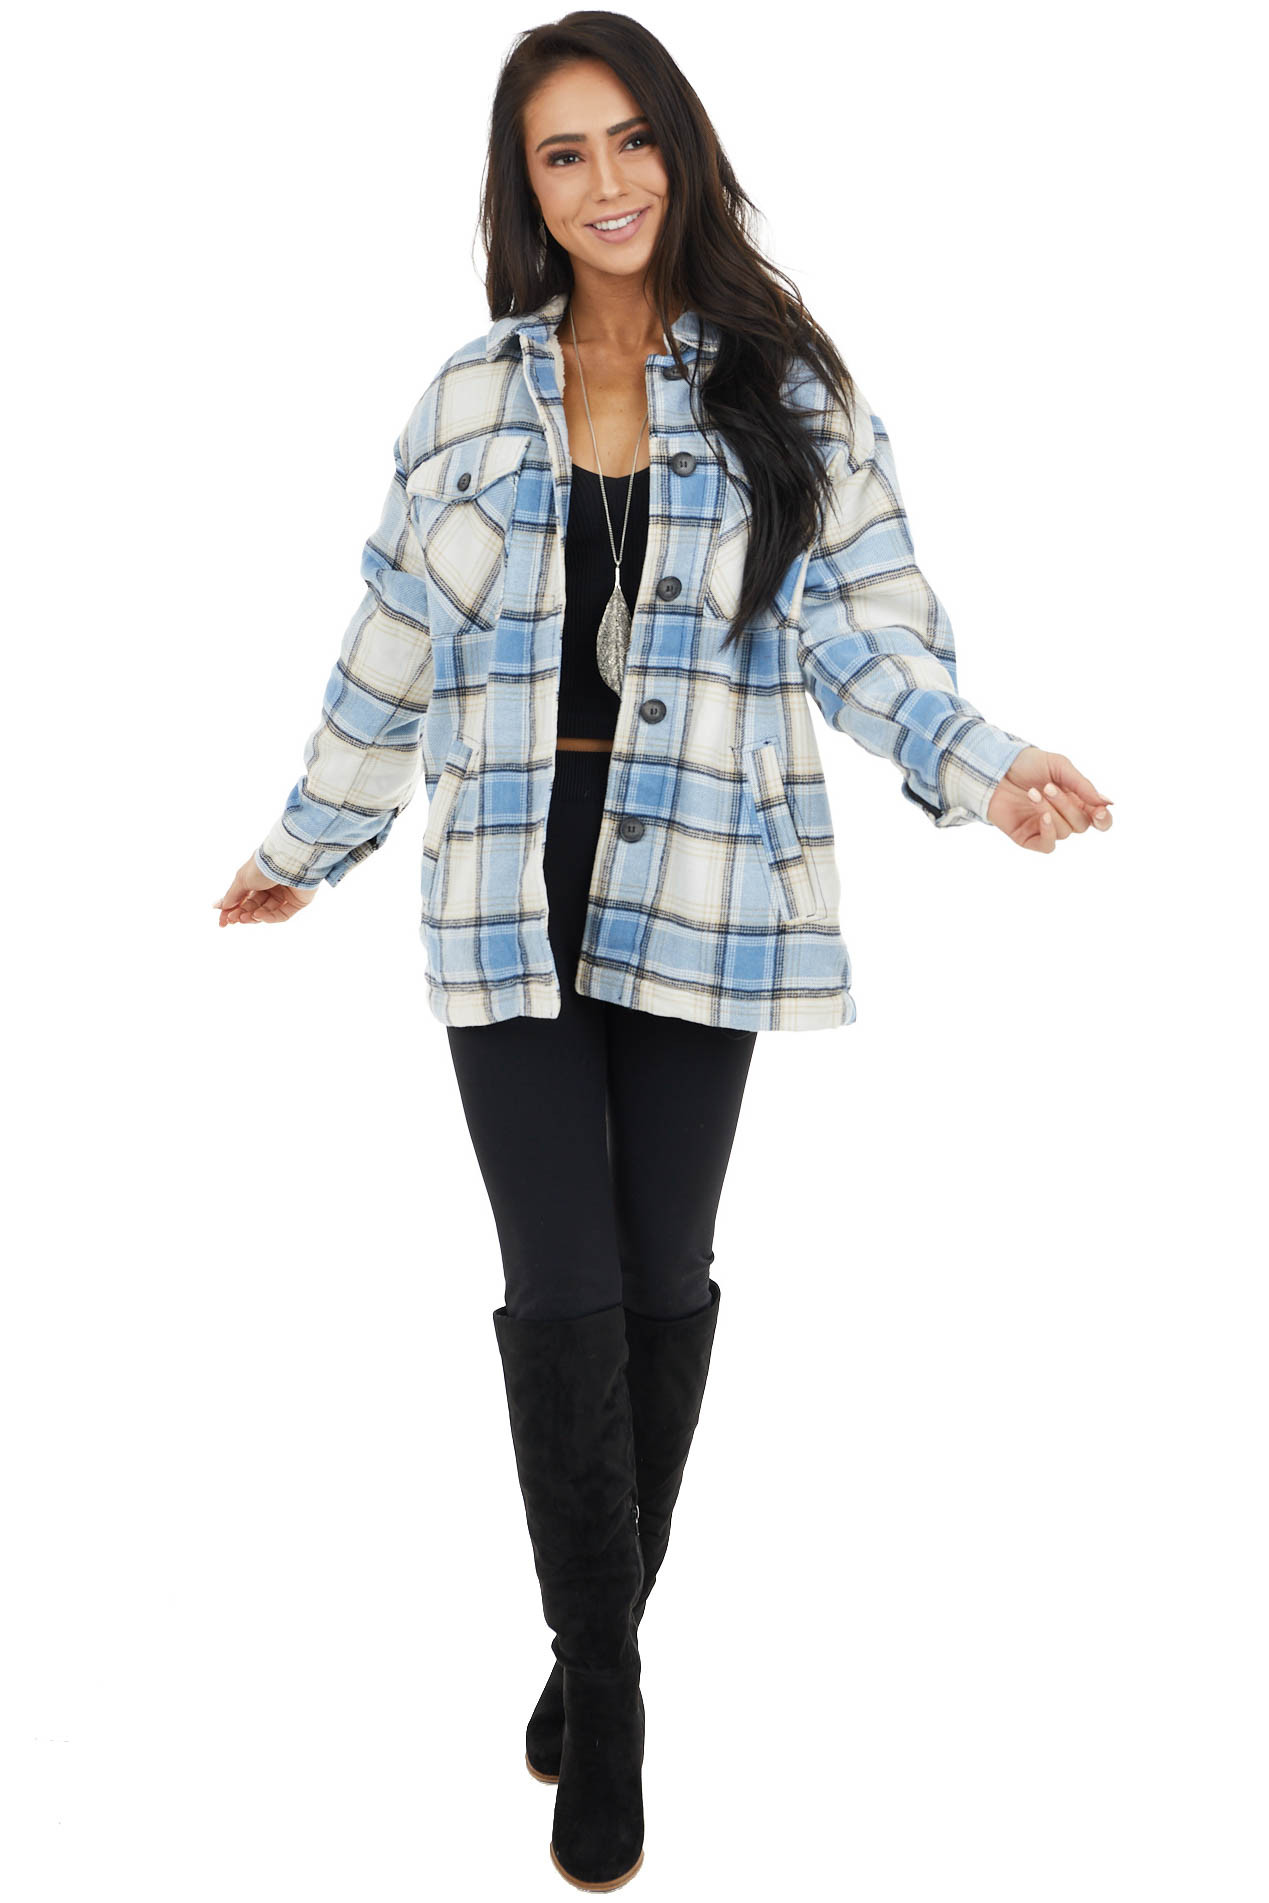 Powder Blue Plaid Sherpa Lined Jacket with Button Detail